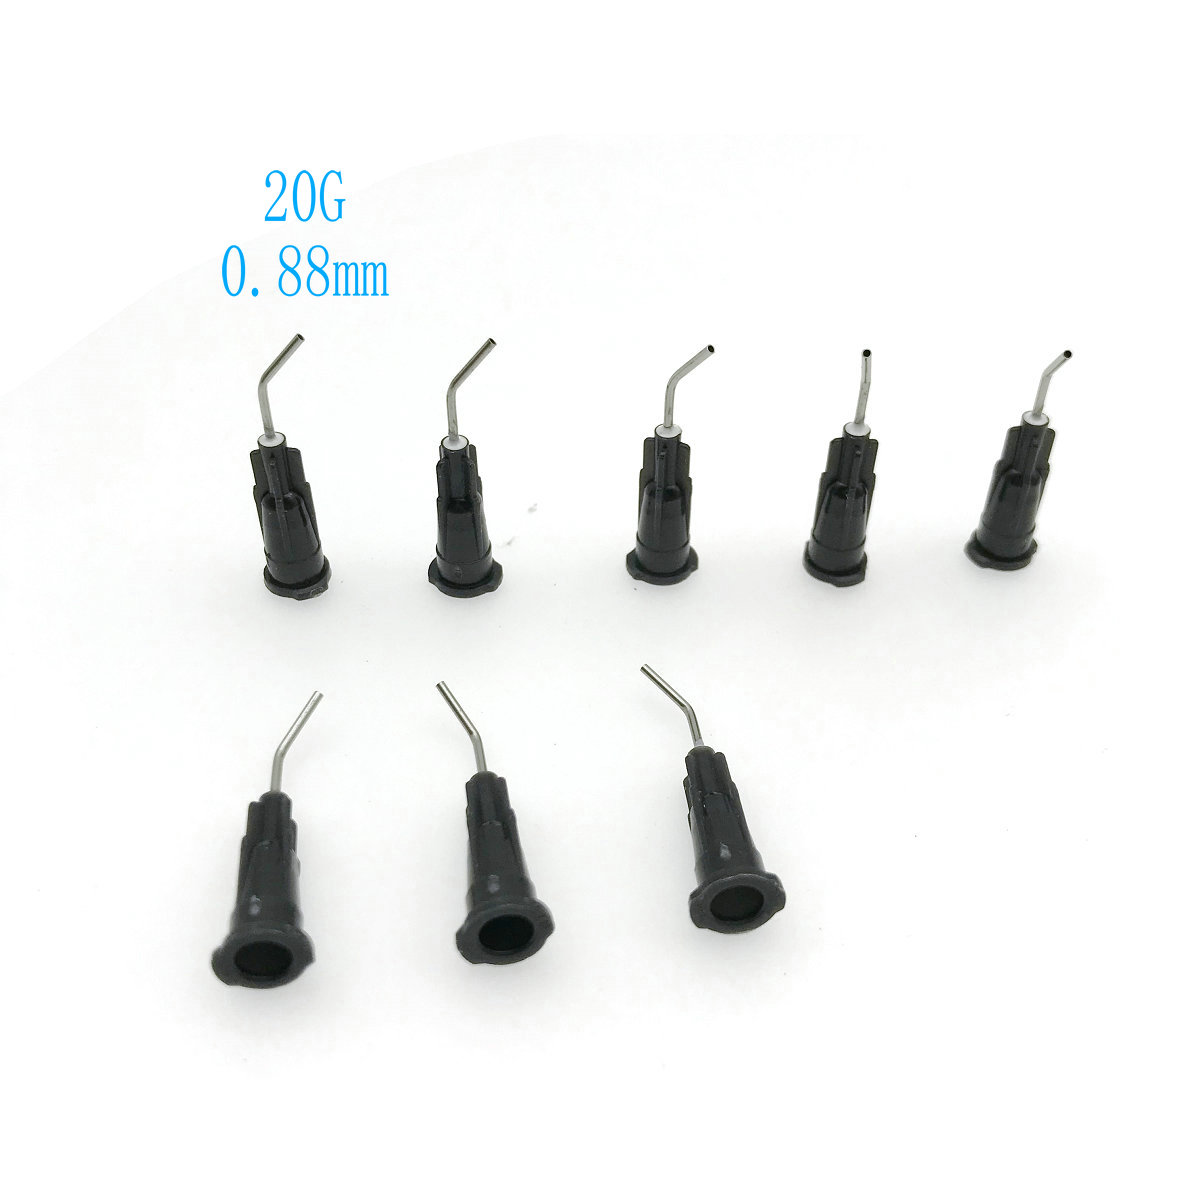 100Pcs Dental Bent Needle Tip Dental Composite Resin Rinse Elbow Black ( 20G/25G For Your Selection)